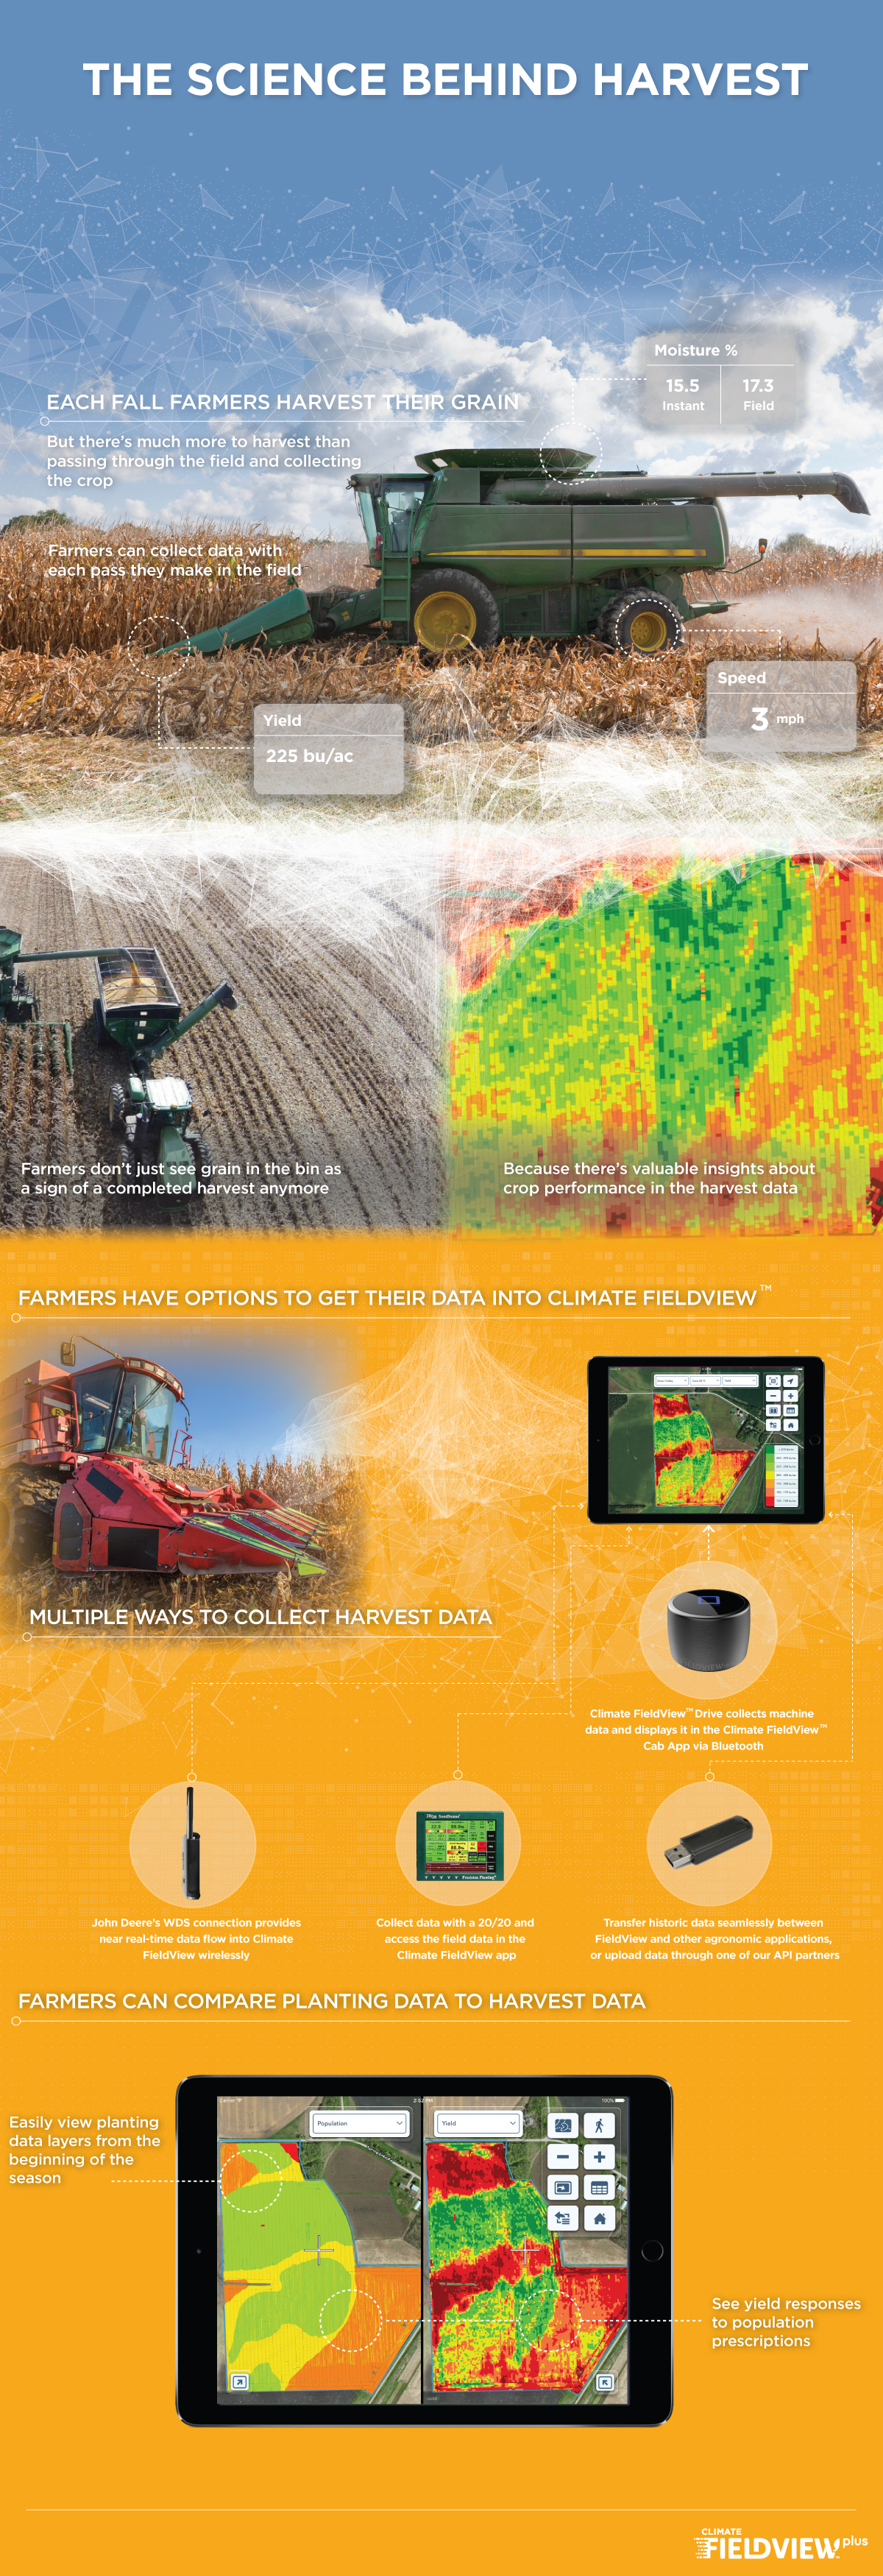 science-behind-harvest-infographic